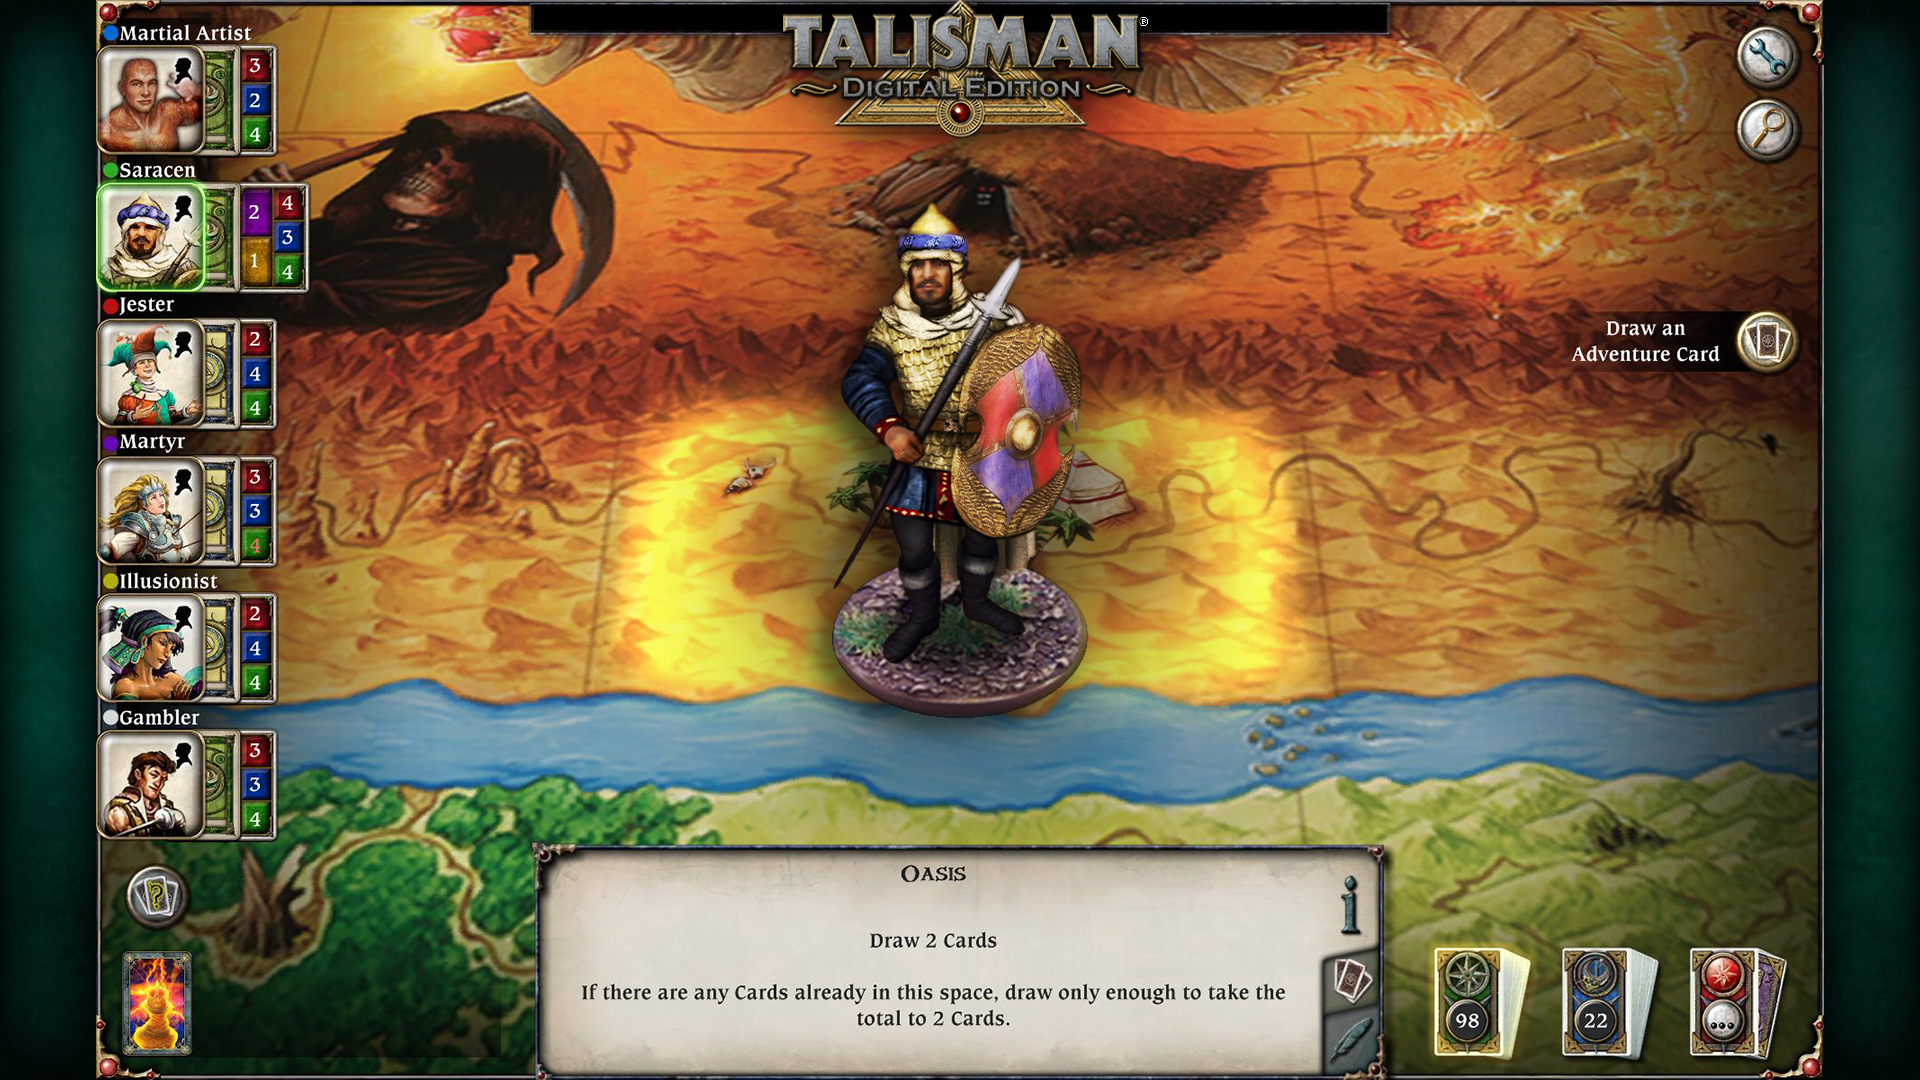 talisman-characters-screenshots-all-languagesnew-03-1